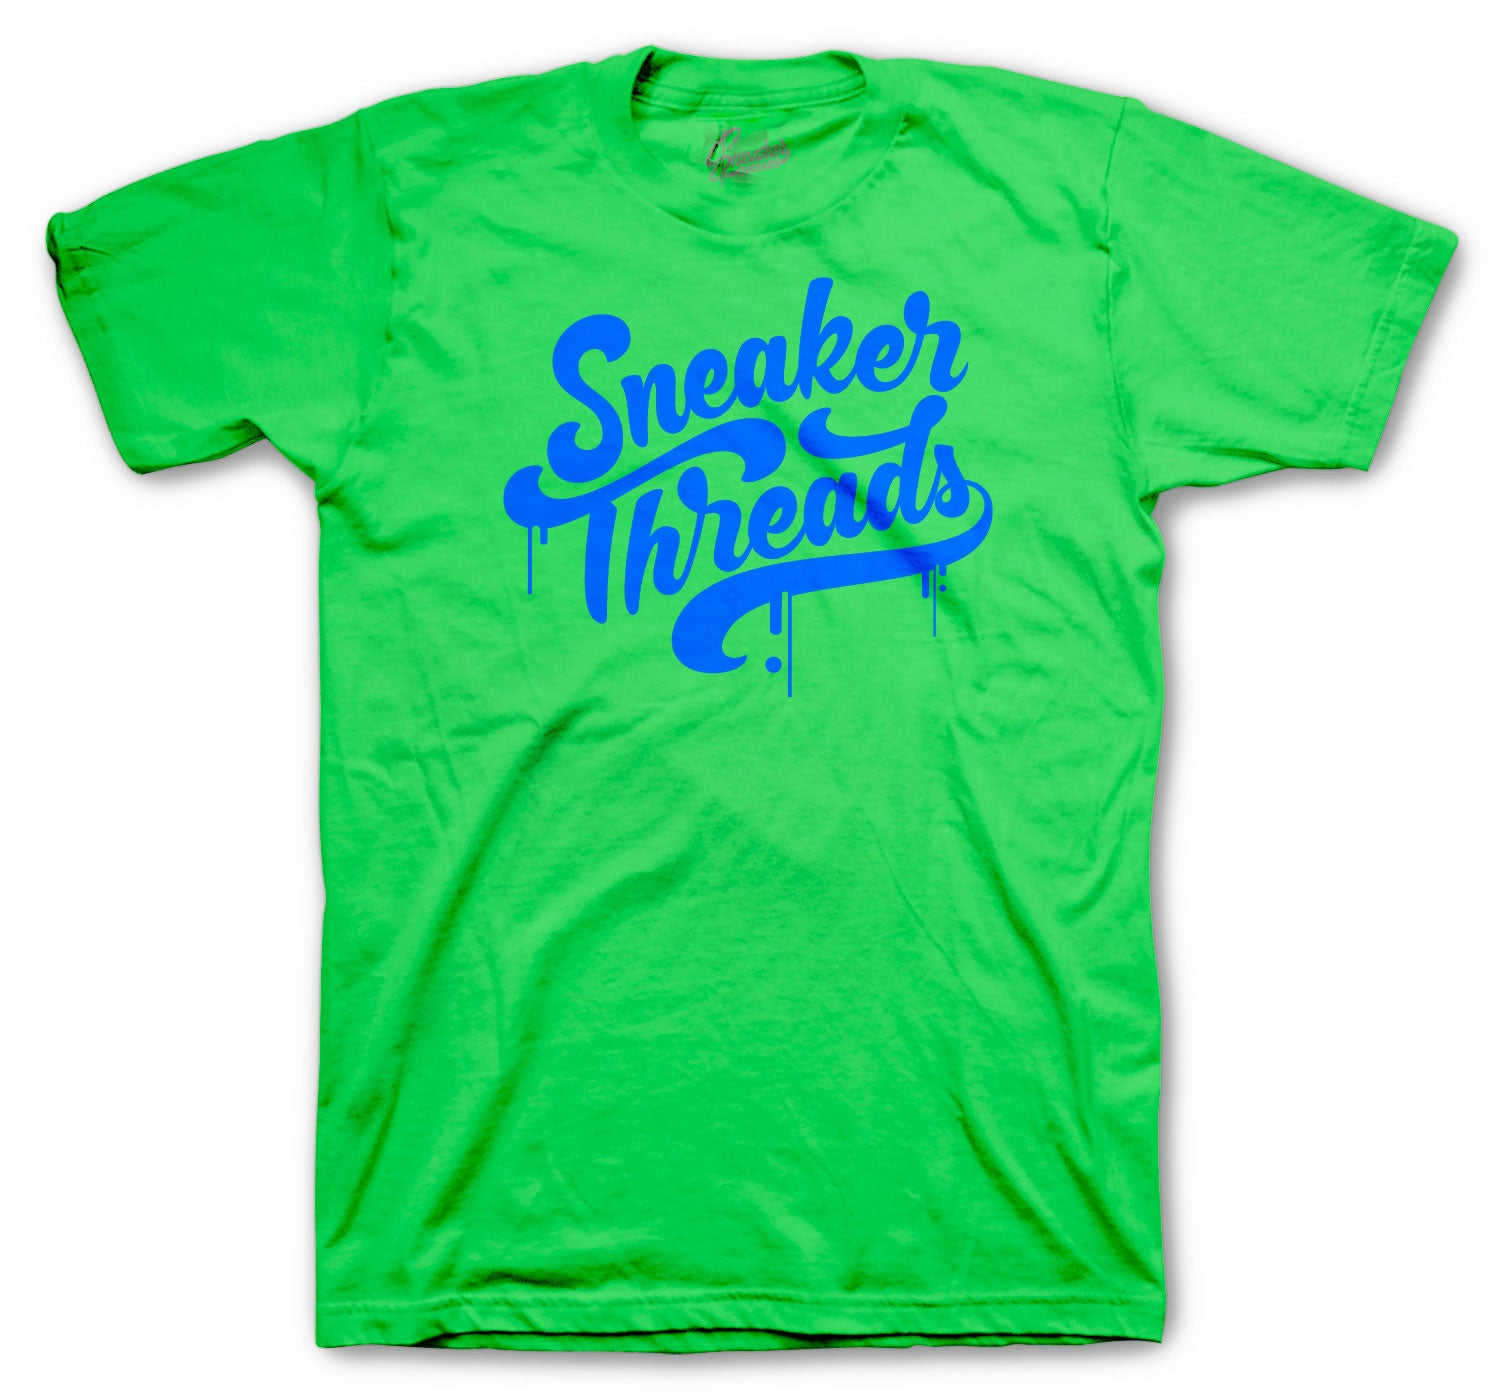 Dunk SB Grateful ST Drip Shirt - Green